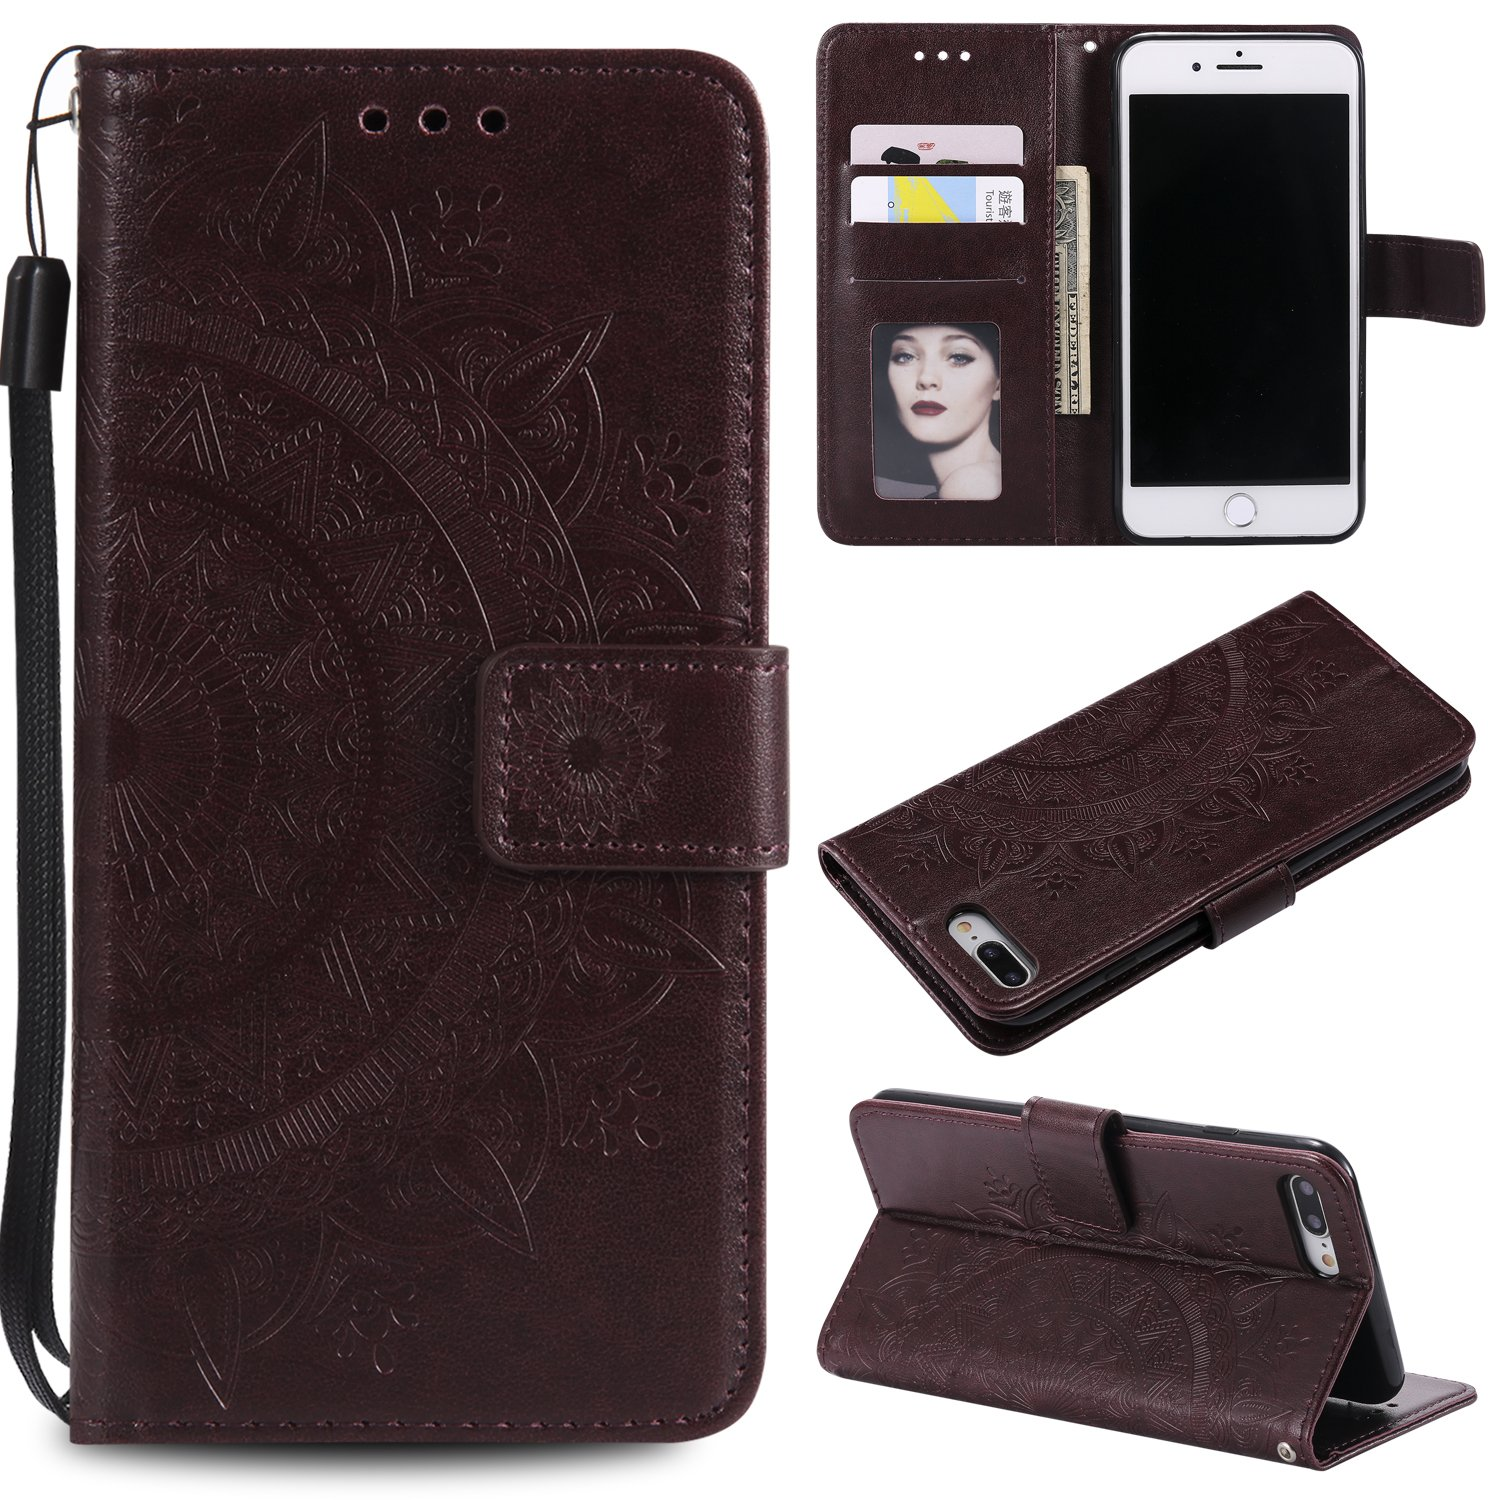 Floral Wallet Case for iPhone 7 Plus 5.5'',Strap Flip Case for iPhone 8 Plus 5.5'',Leecase Embossed Totem Flower Design Pu Leather Bookstyle Stand Flip Case for iPhone 7 Plus /8 Plus 5.5''-Brown